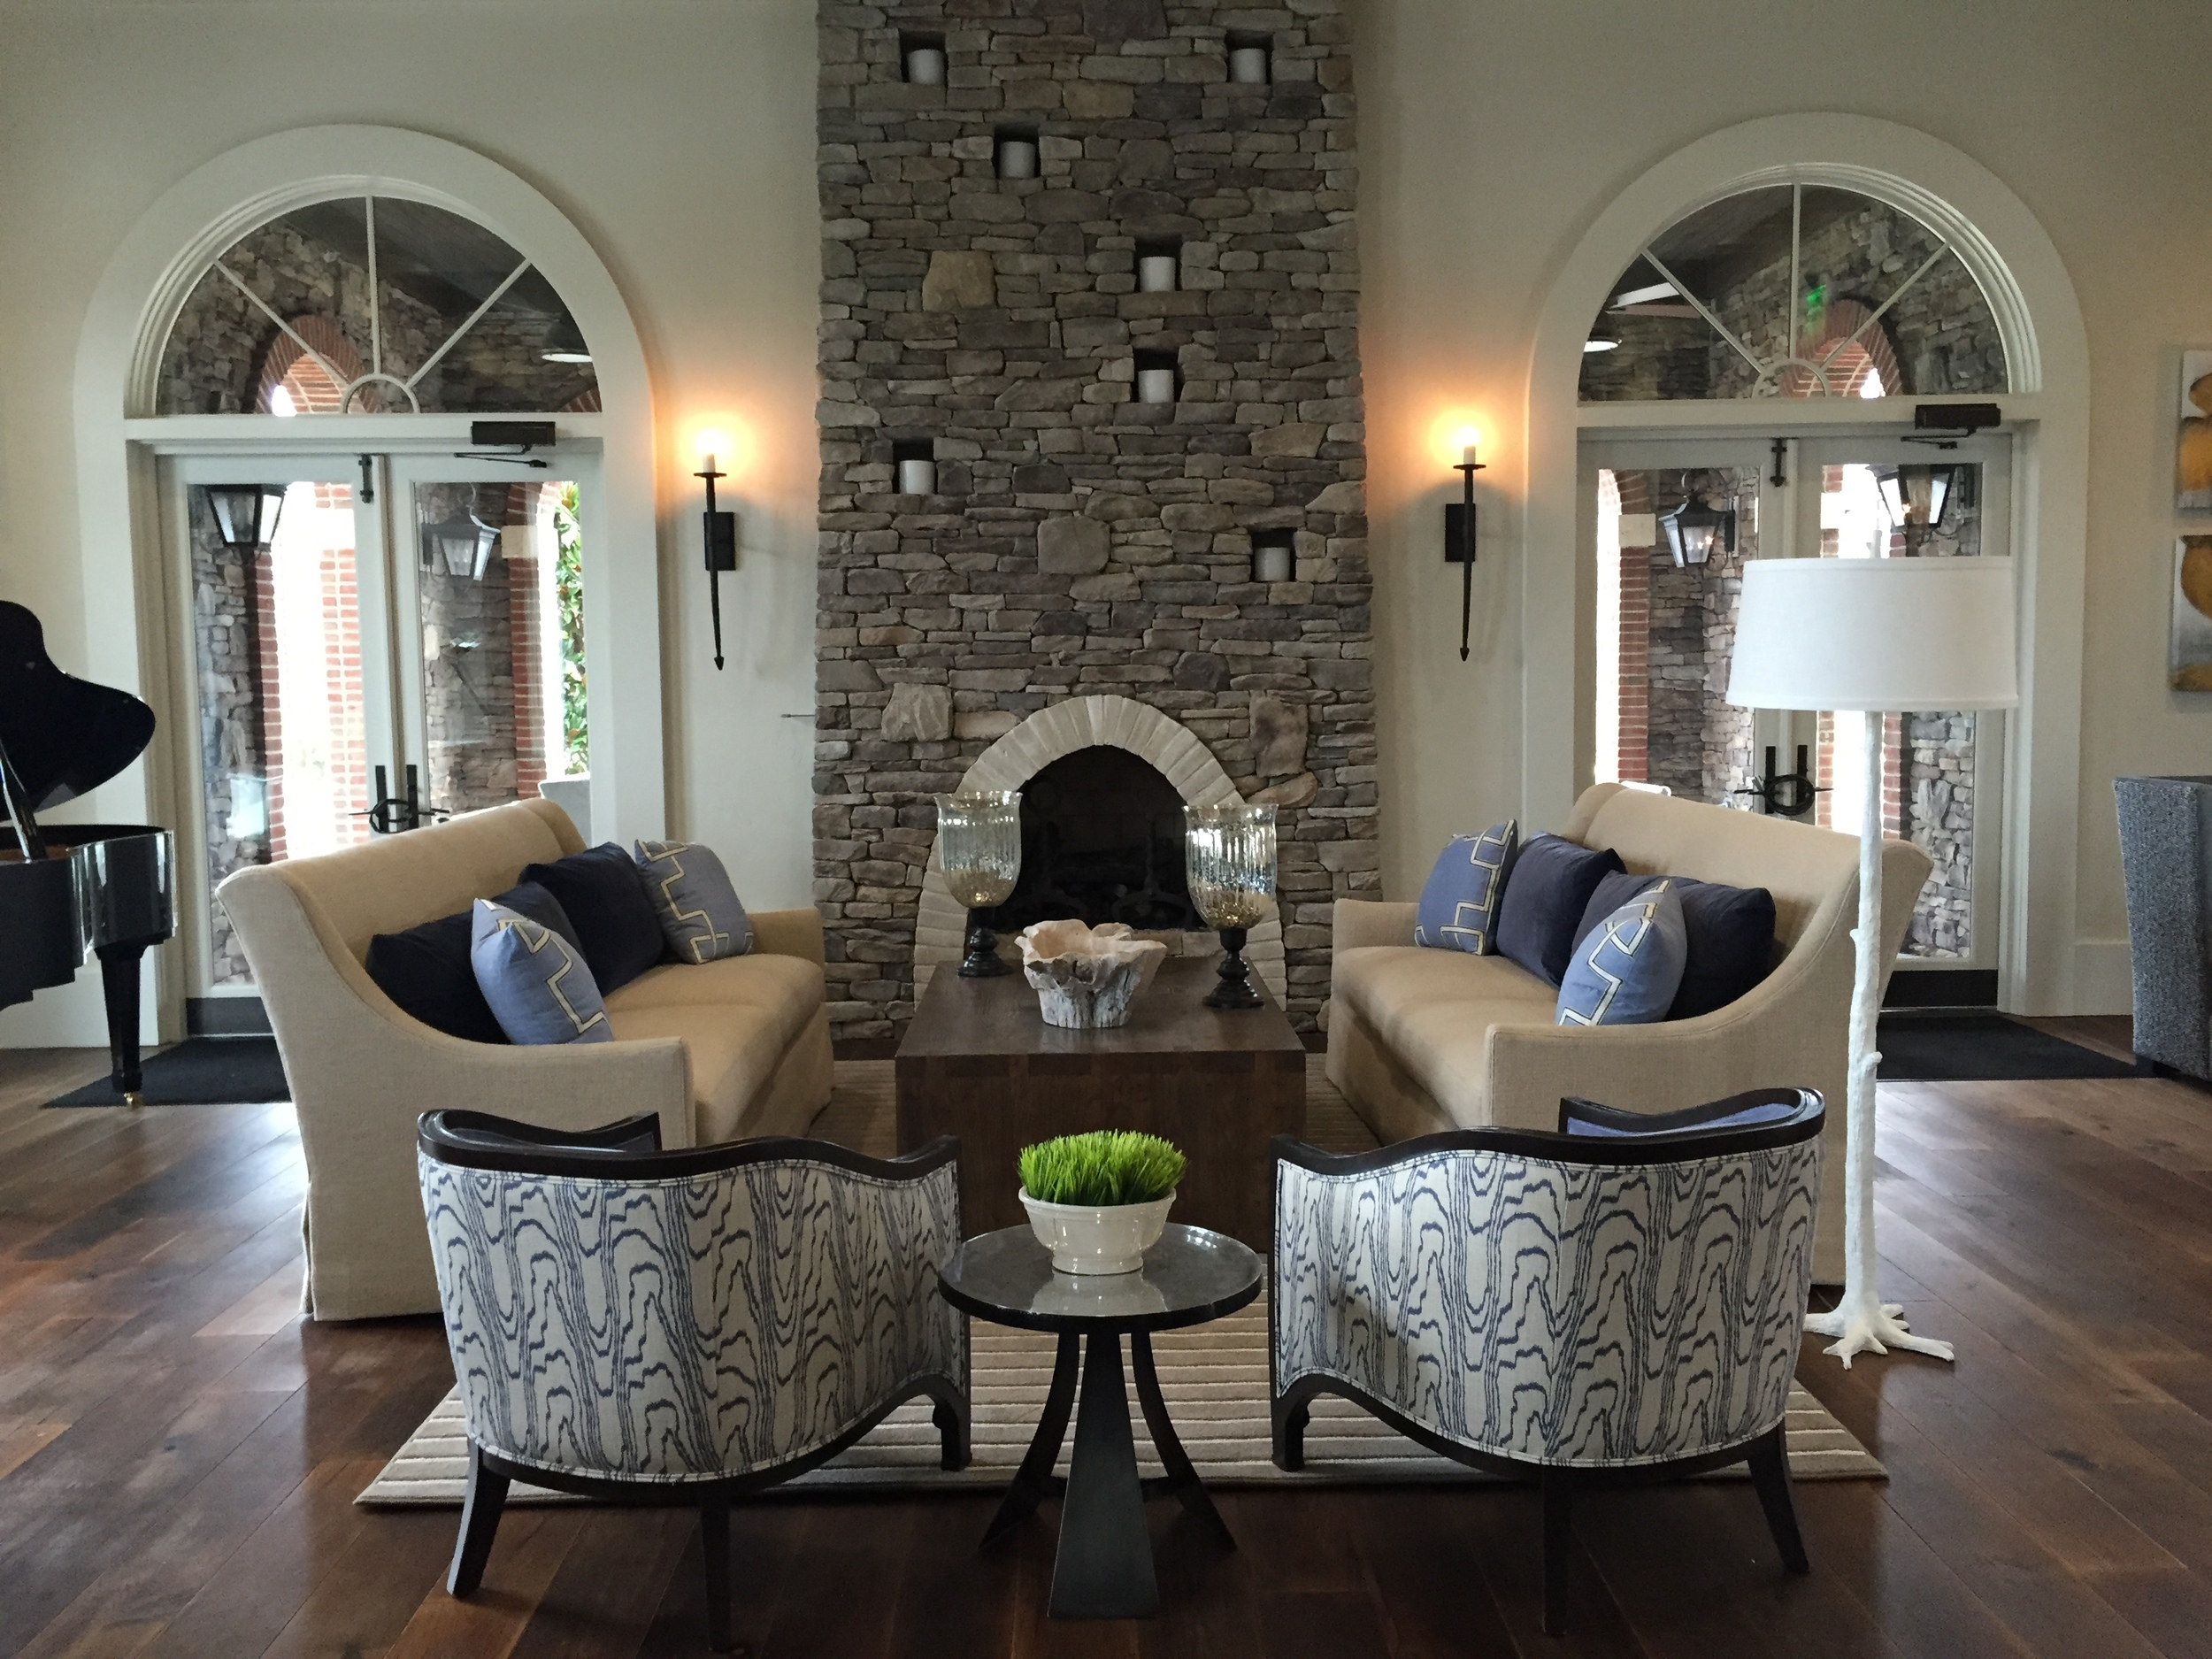 Ansana Interior Design Stone Fireplace with Candles.jpg